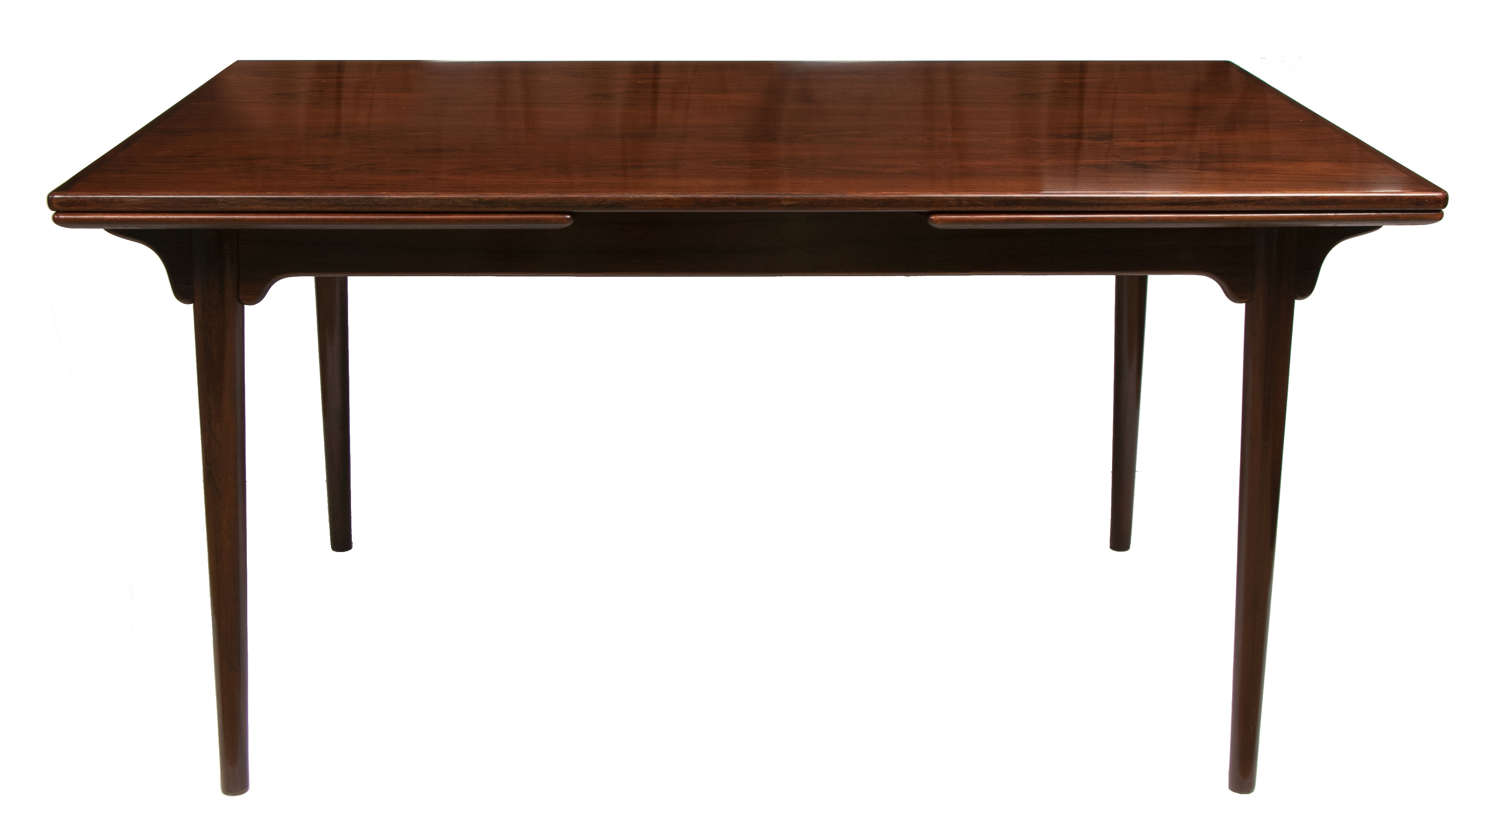 Gunni Omann rosewood dining table